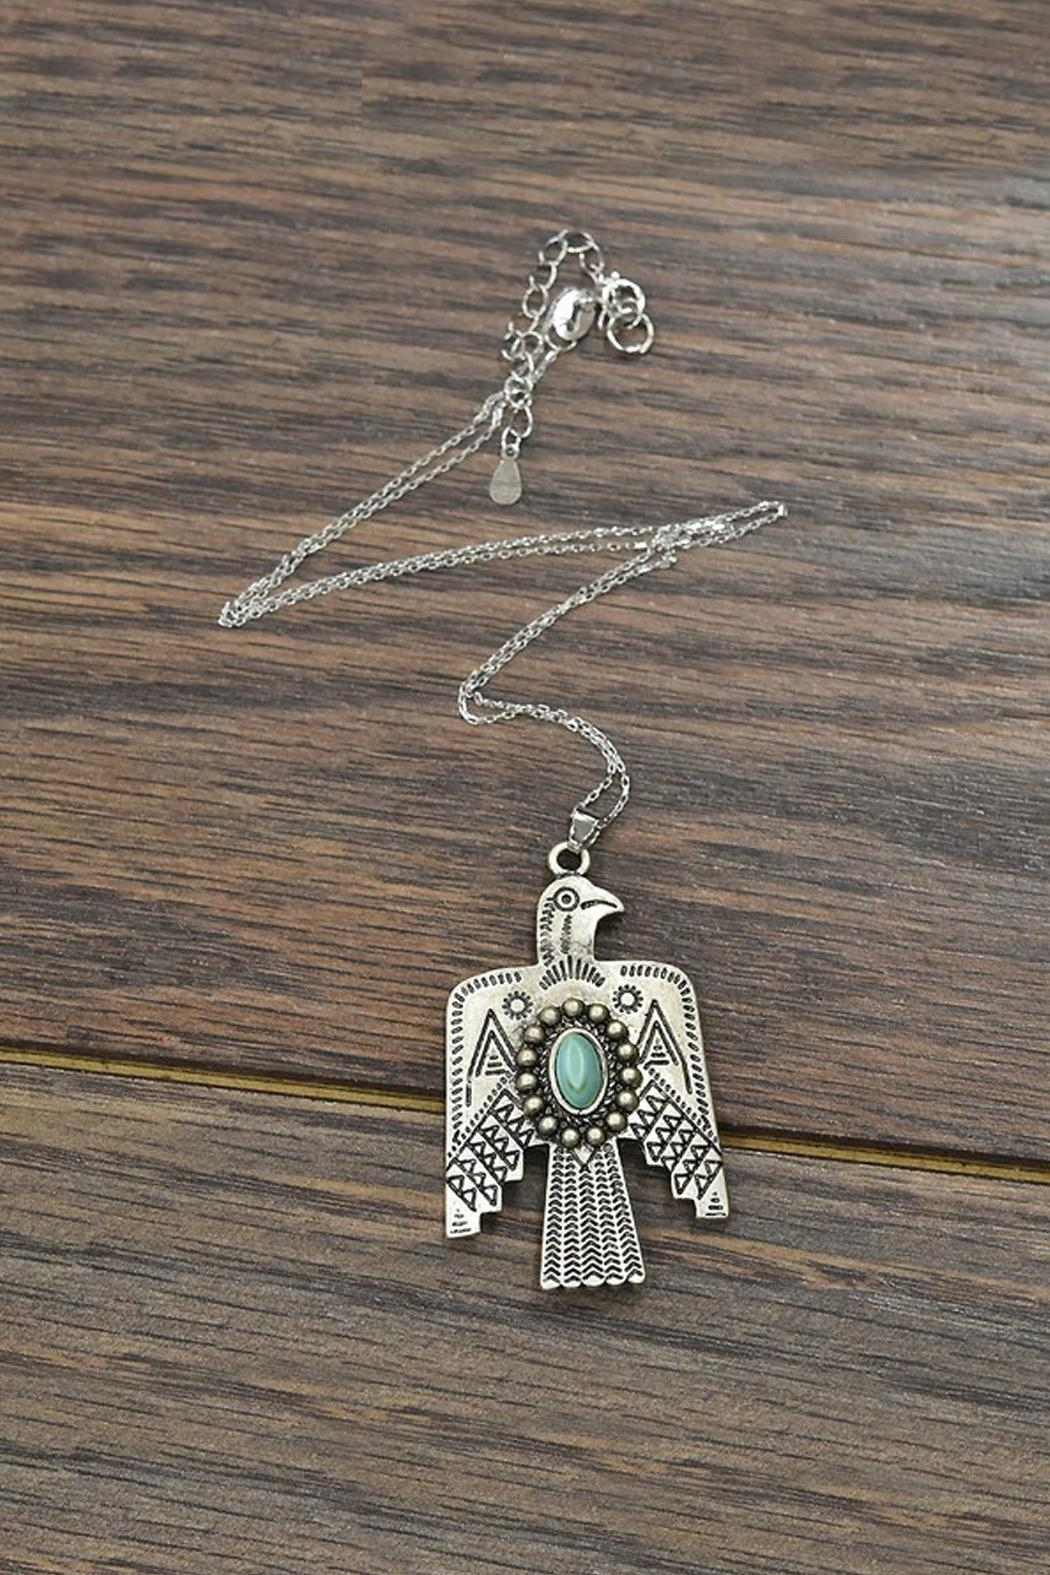 JChronicles Sterling-Silver-Chain Natural-Turquoise Thunderbird-Necklace - Main Image